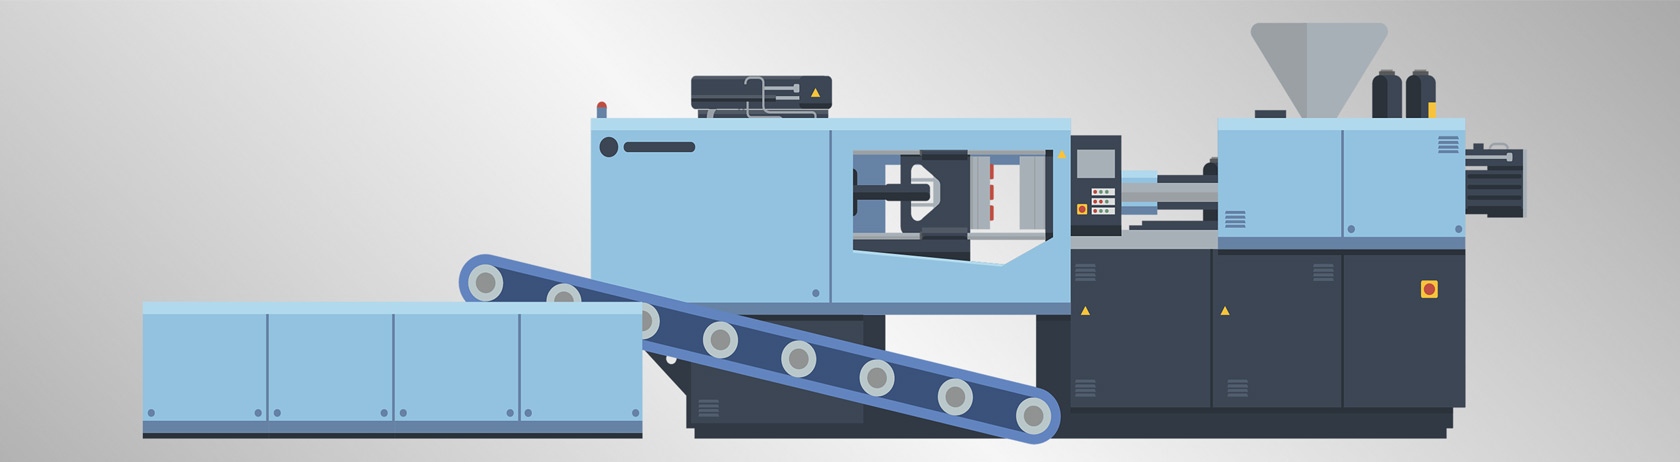 Injection moulding is a complex process